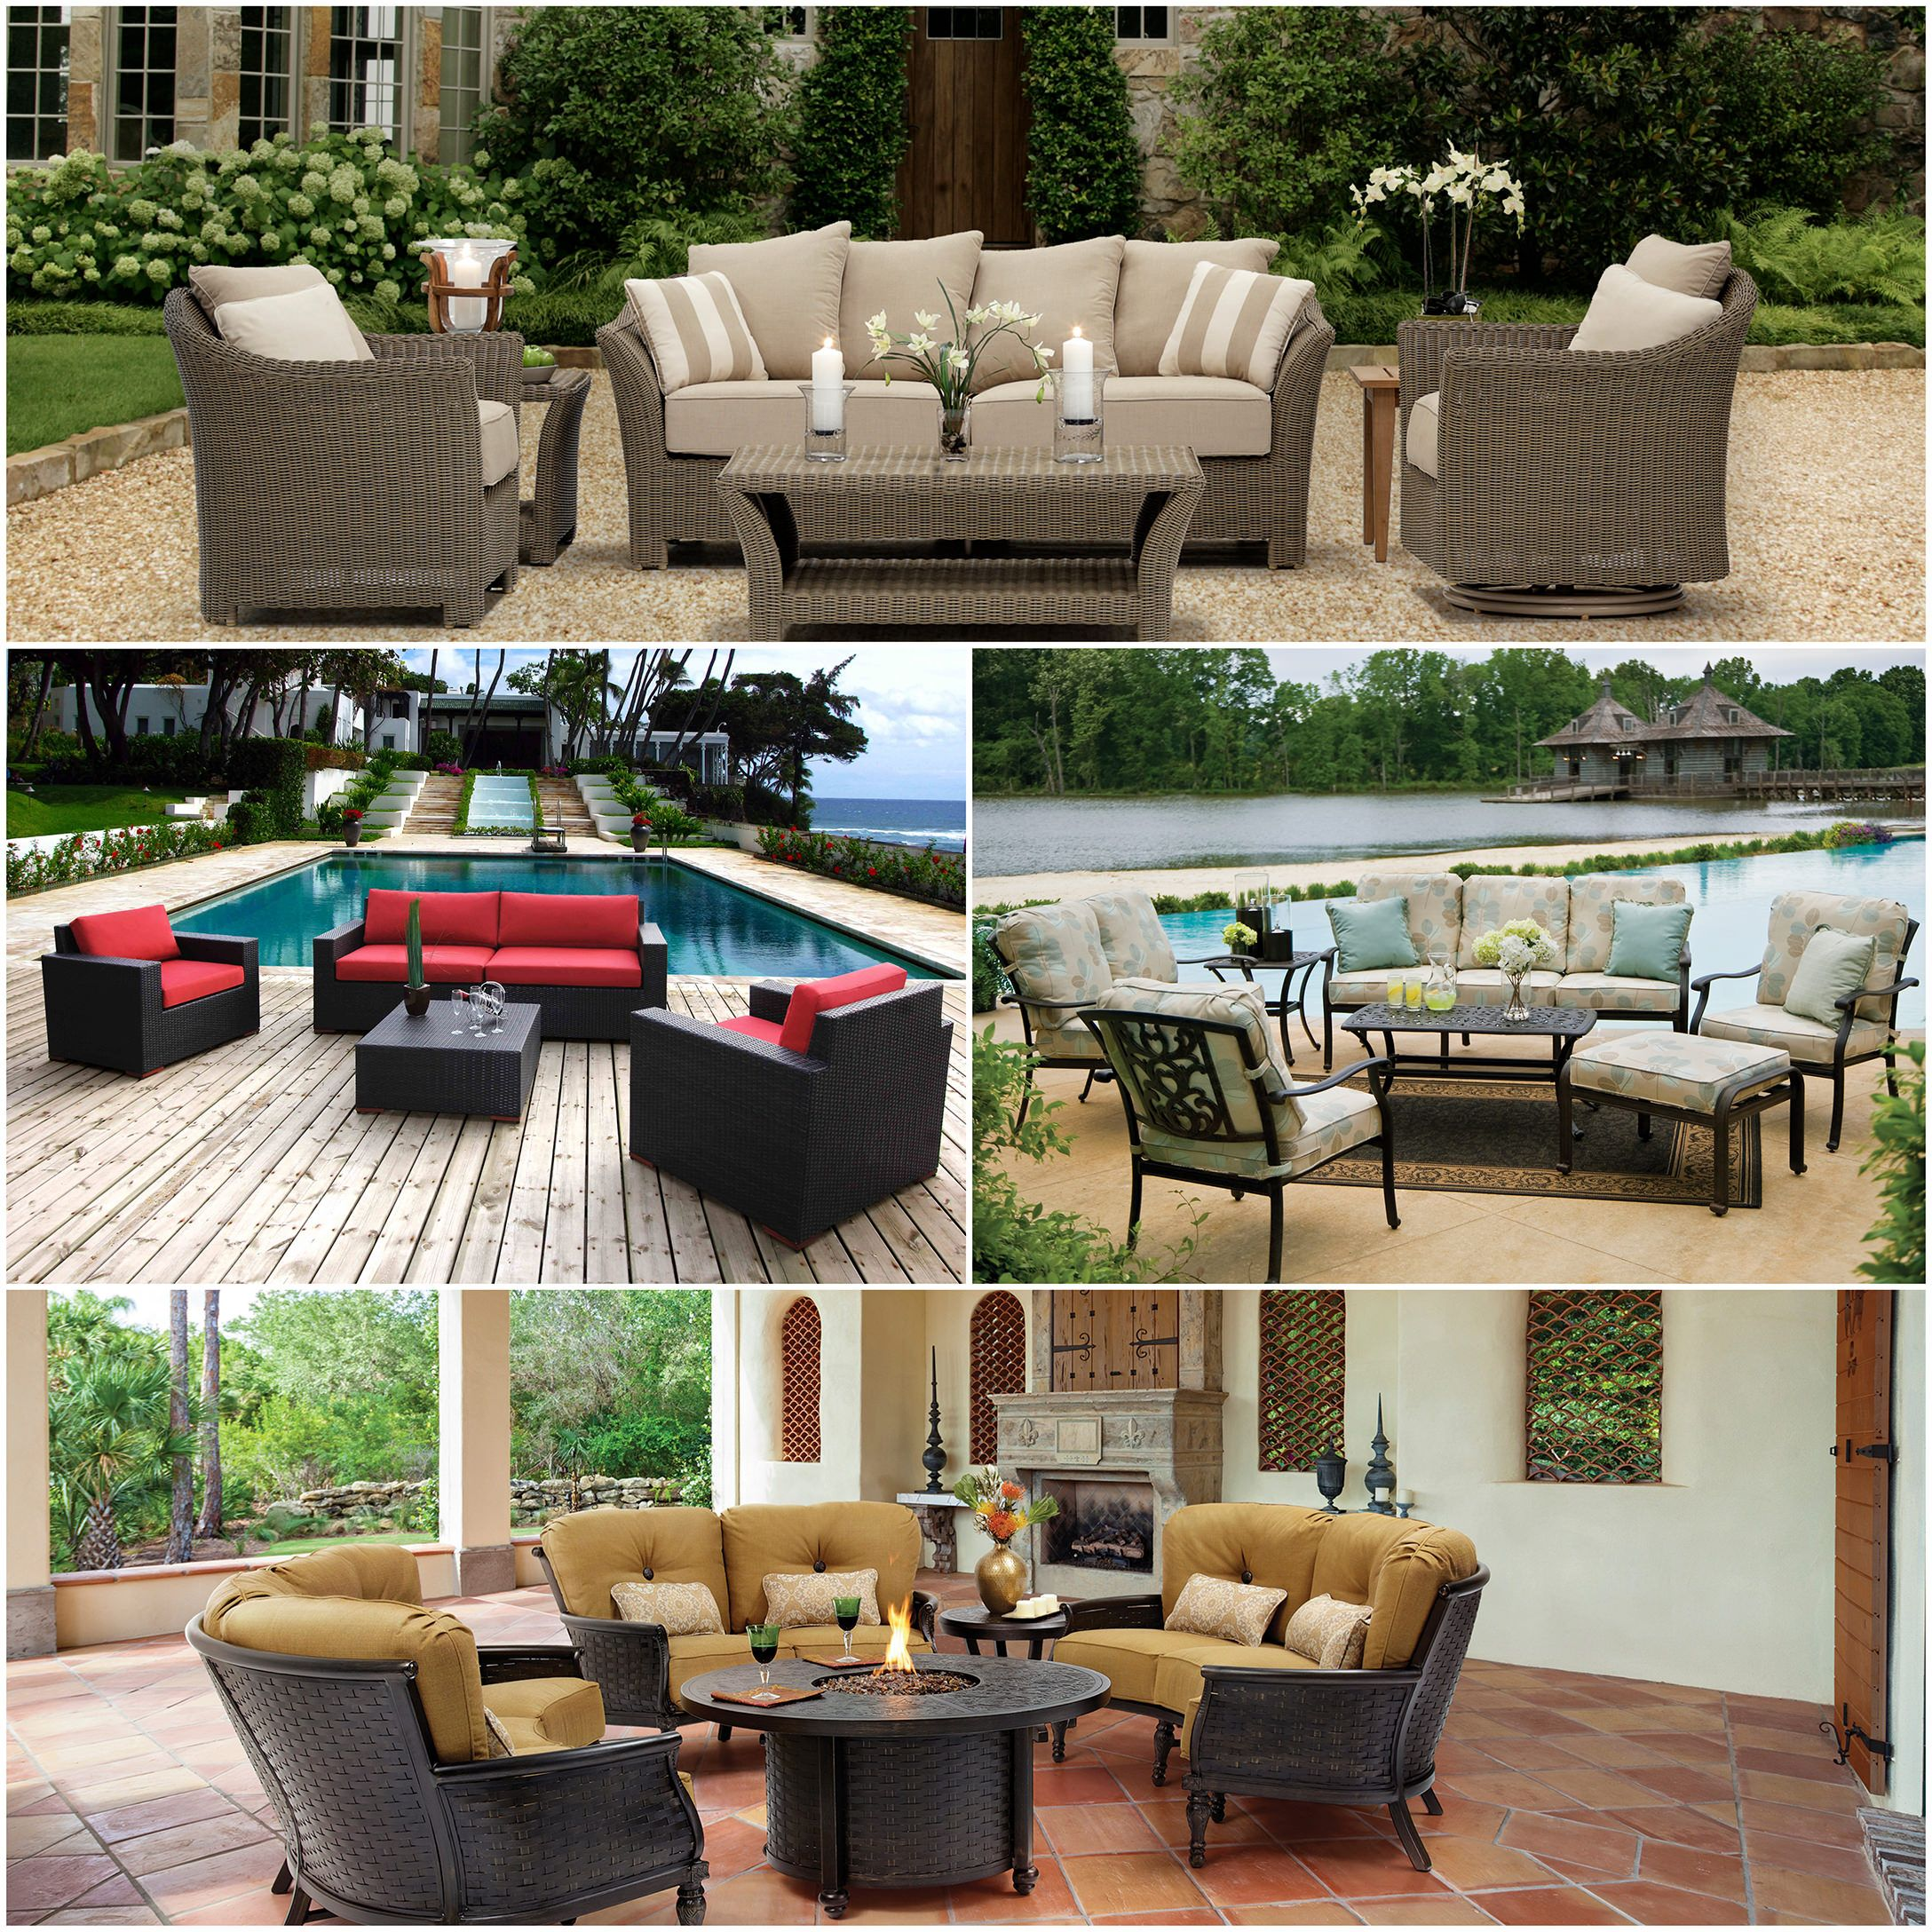 X is for Xenial Seating   A to Z Guide To Outdoor Decor: Backyard Design Tips & Ideas: http://bit.ly/1PO8V2X  #OutdoorFurniture #PatioFurniture